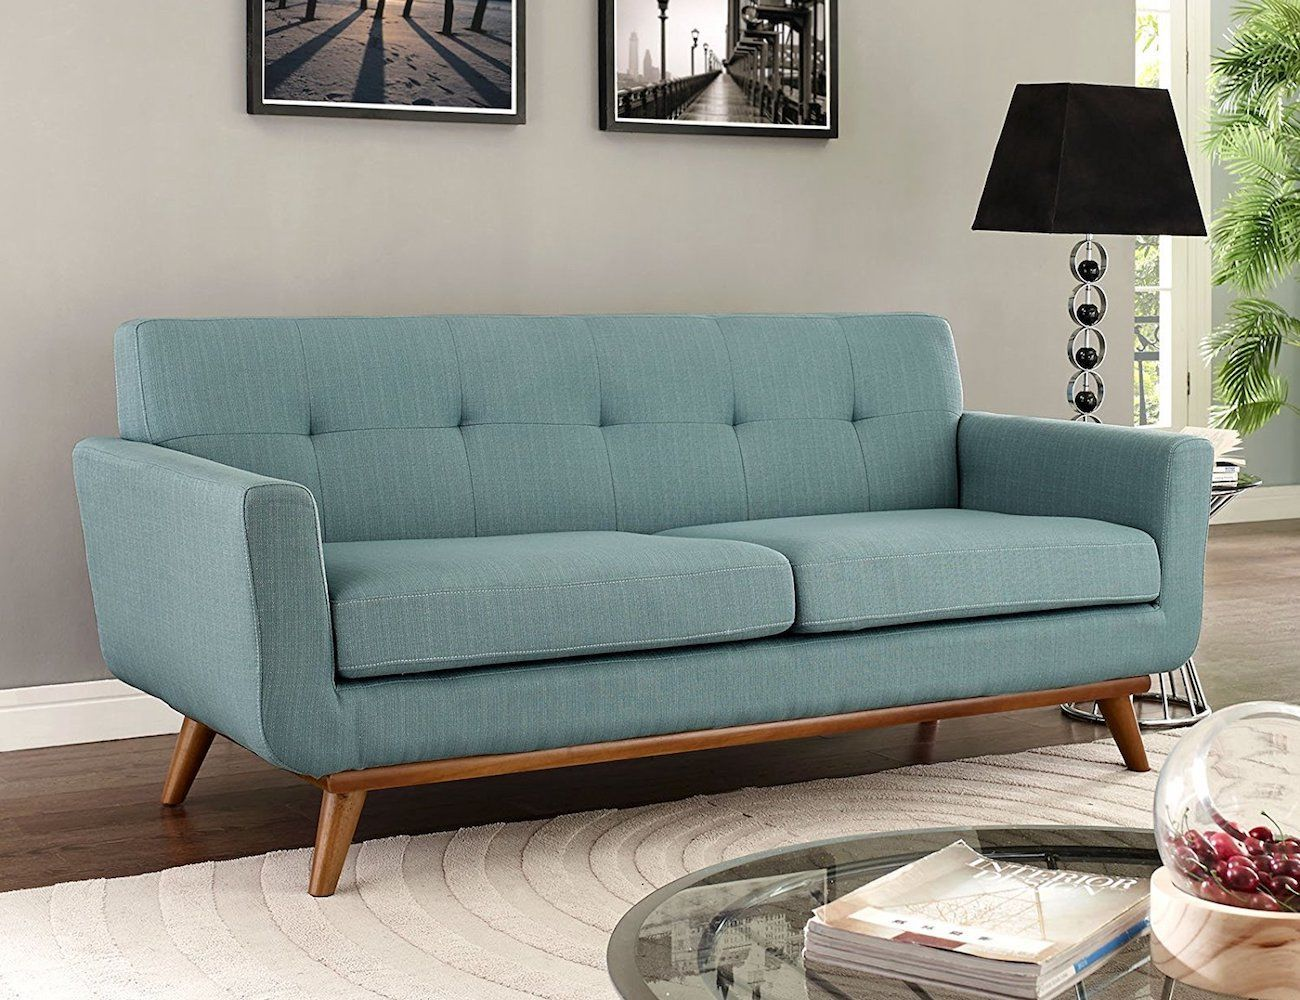 Modway Engage Upholstered Loveseat Sofa